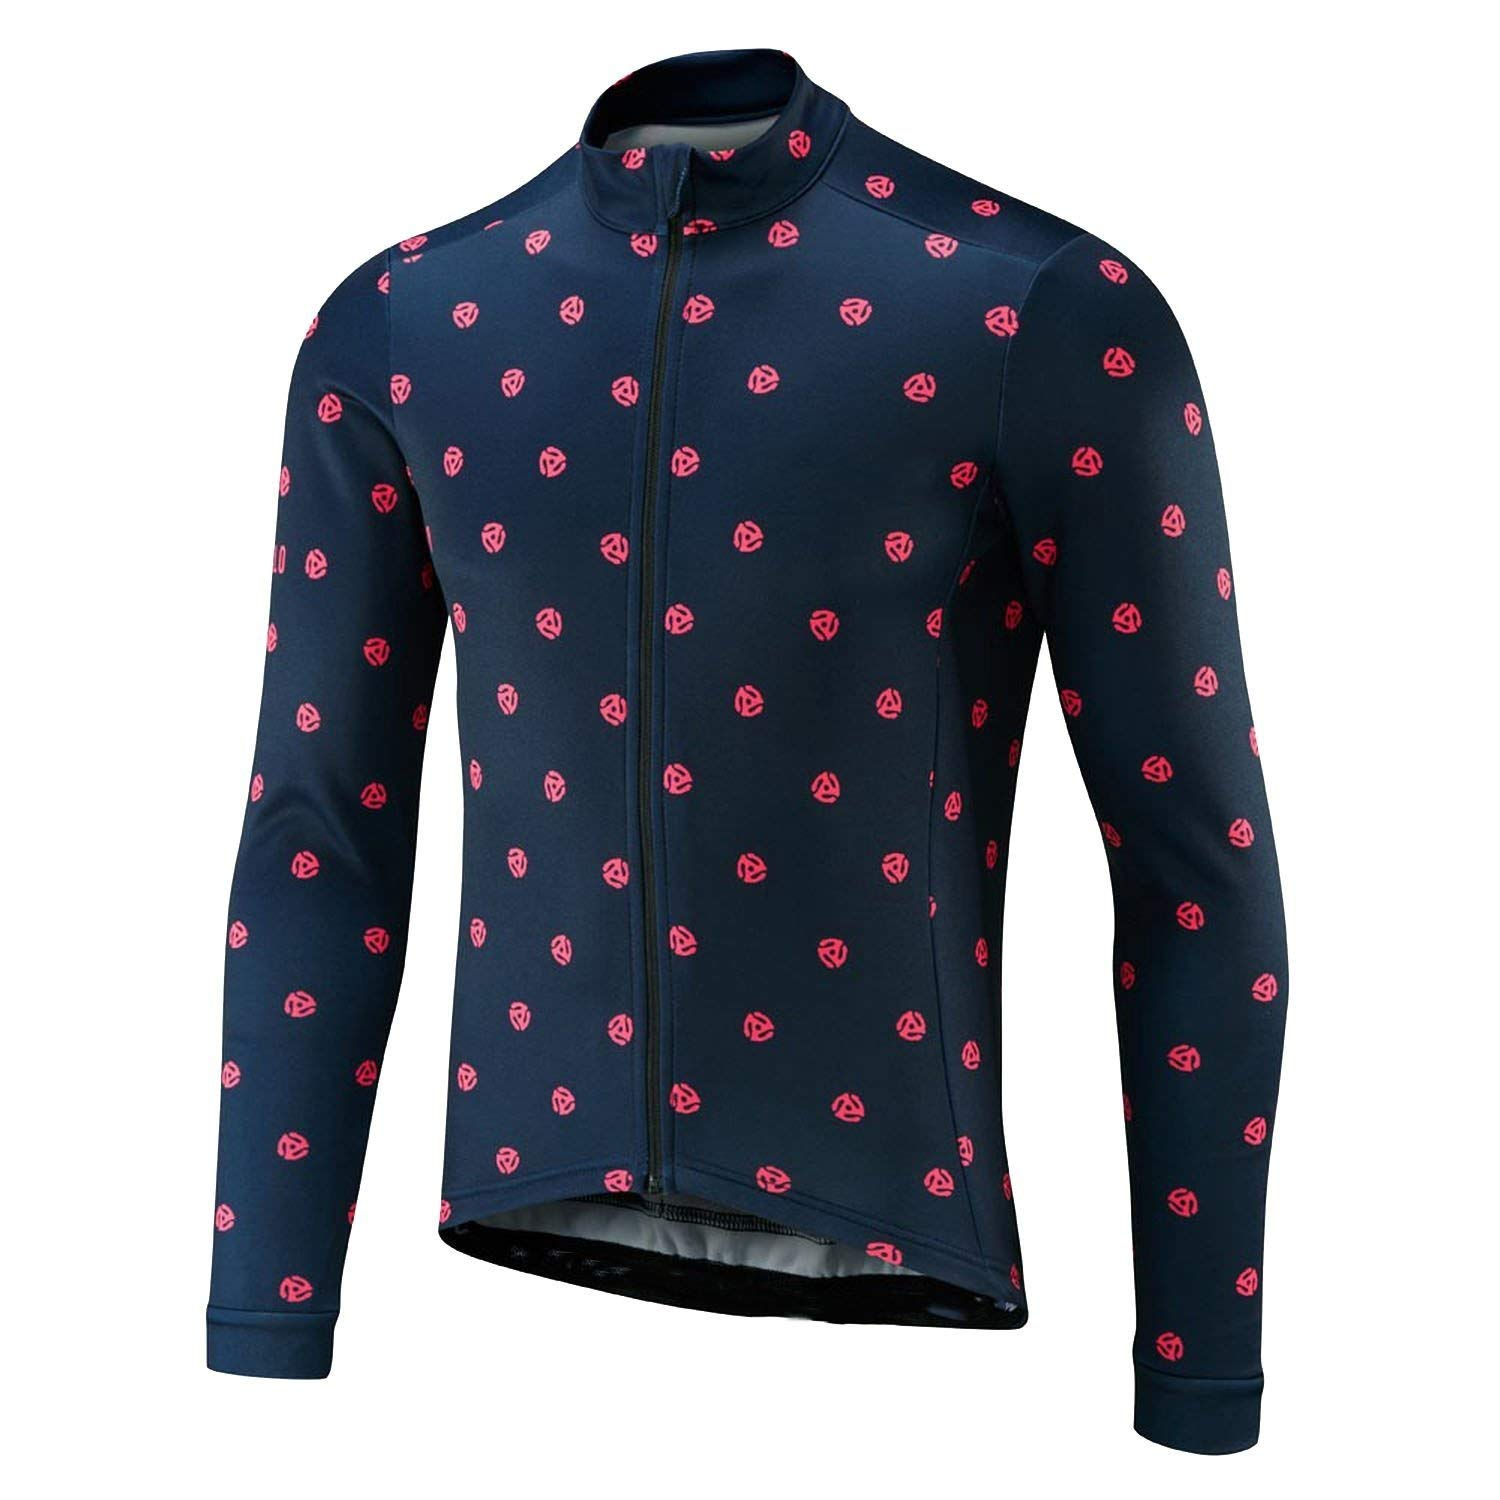 4 M contentment Men Bicycle Long Sleeve Cycling Jersey Clothing